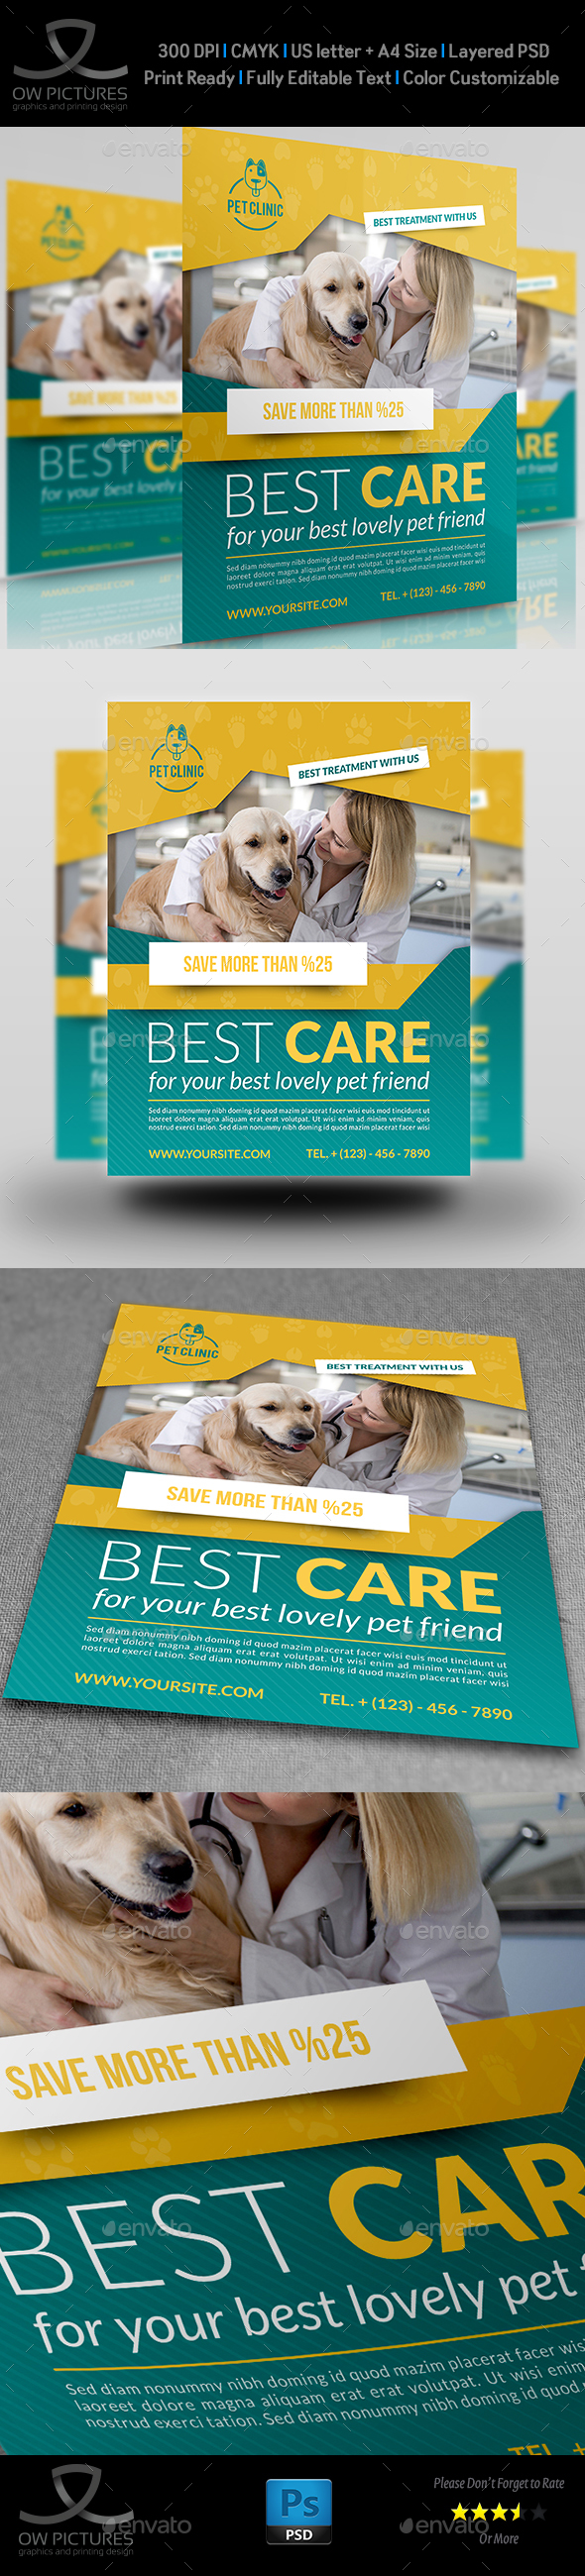 Veterinarian Clinic Flyer Template - Flyers Print Templates